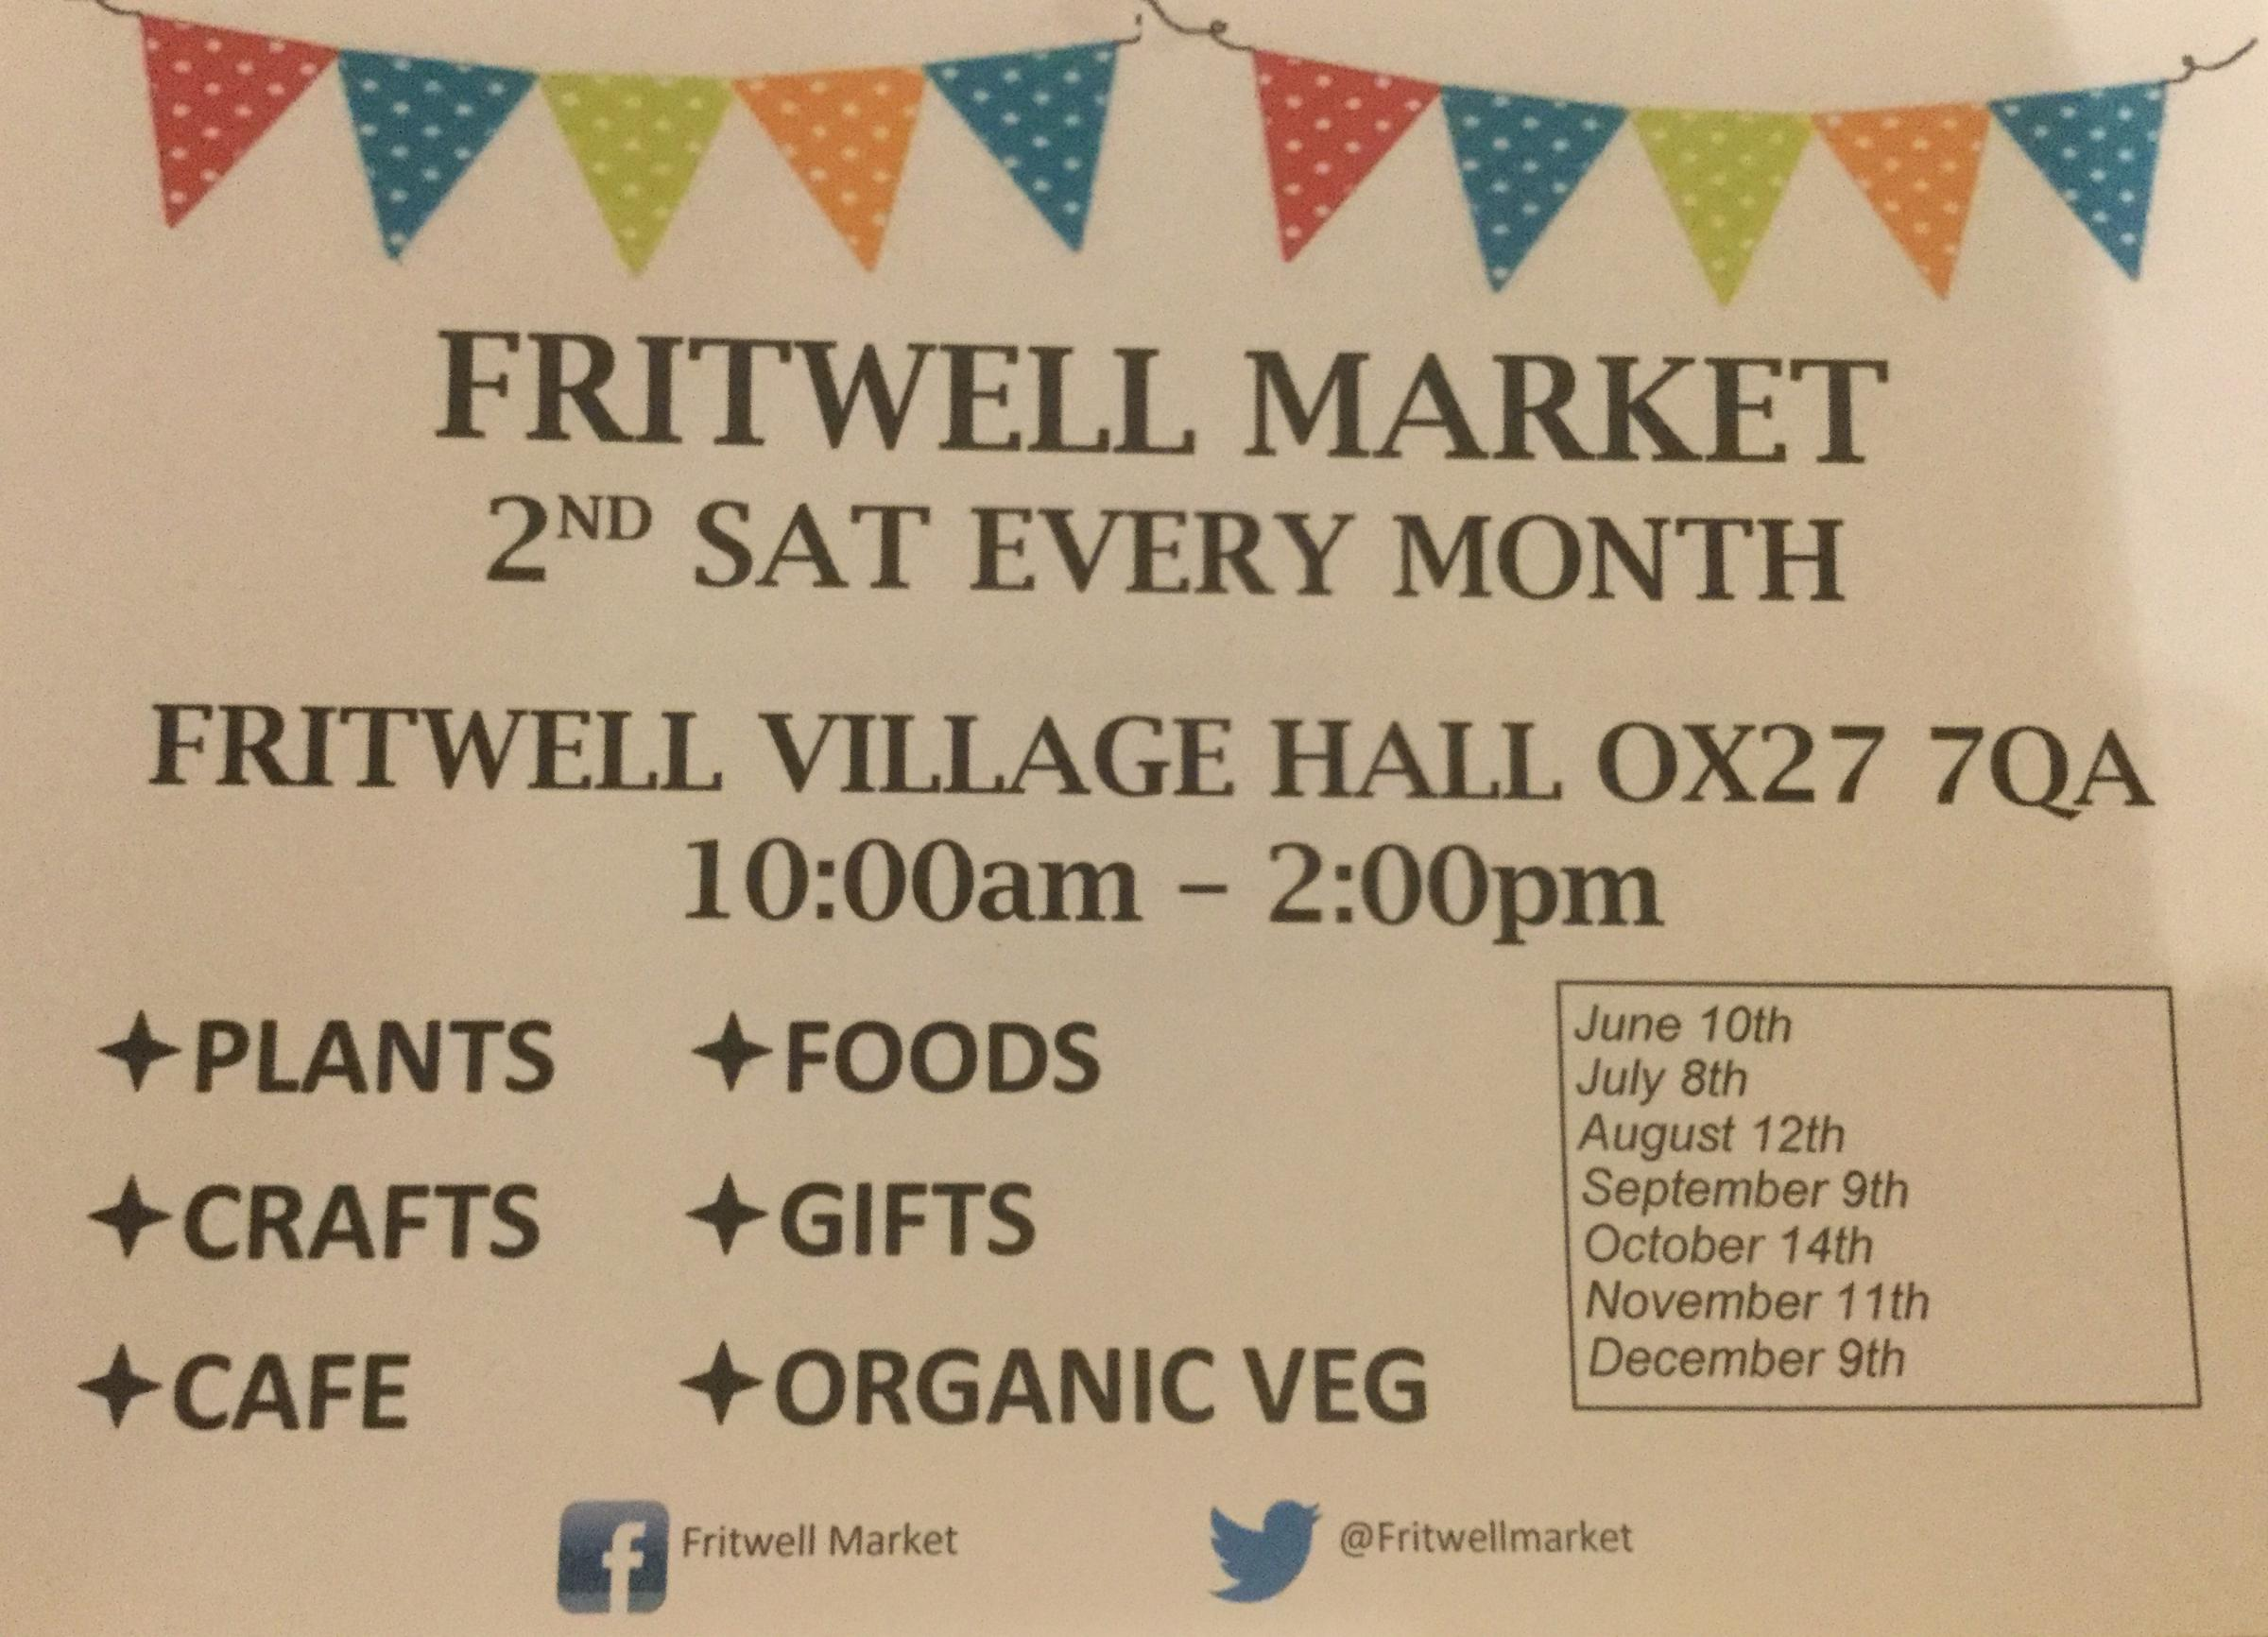 Fritwell Market